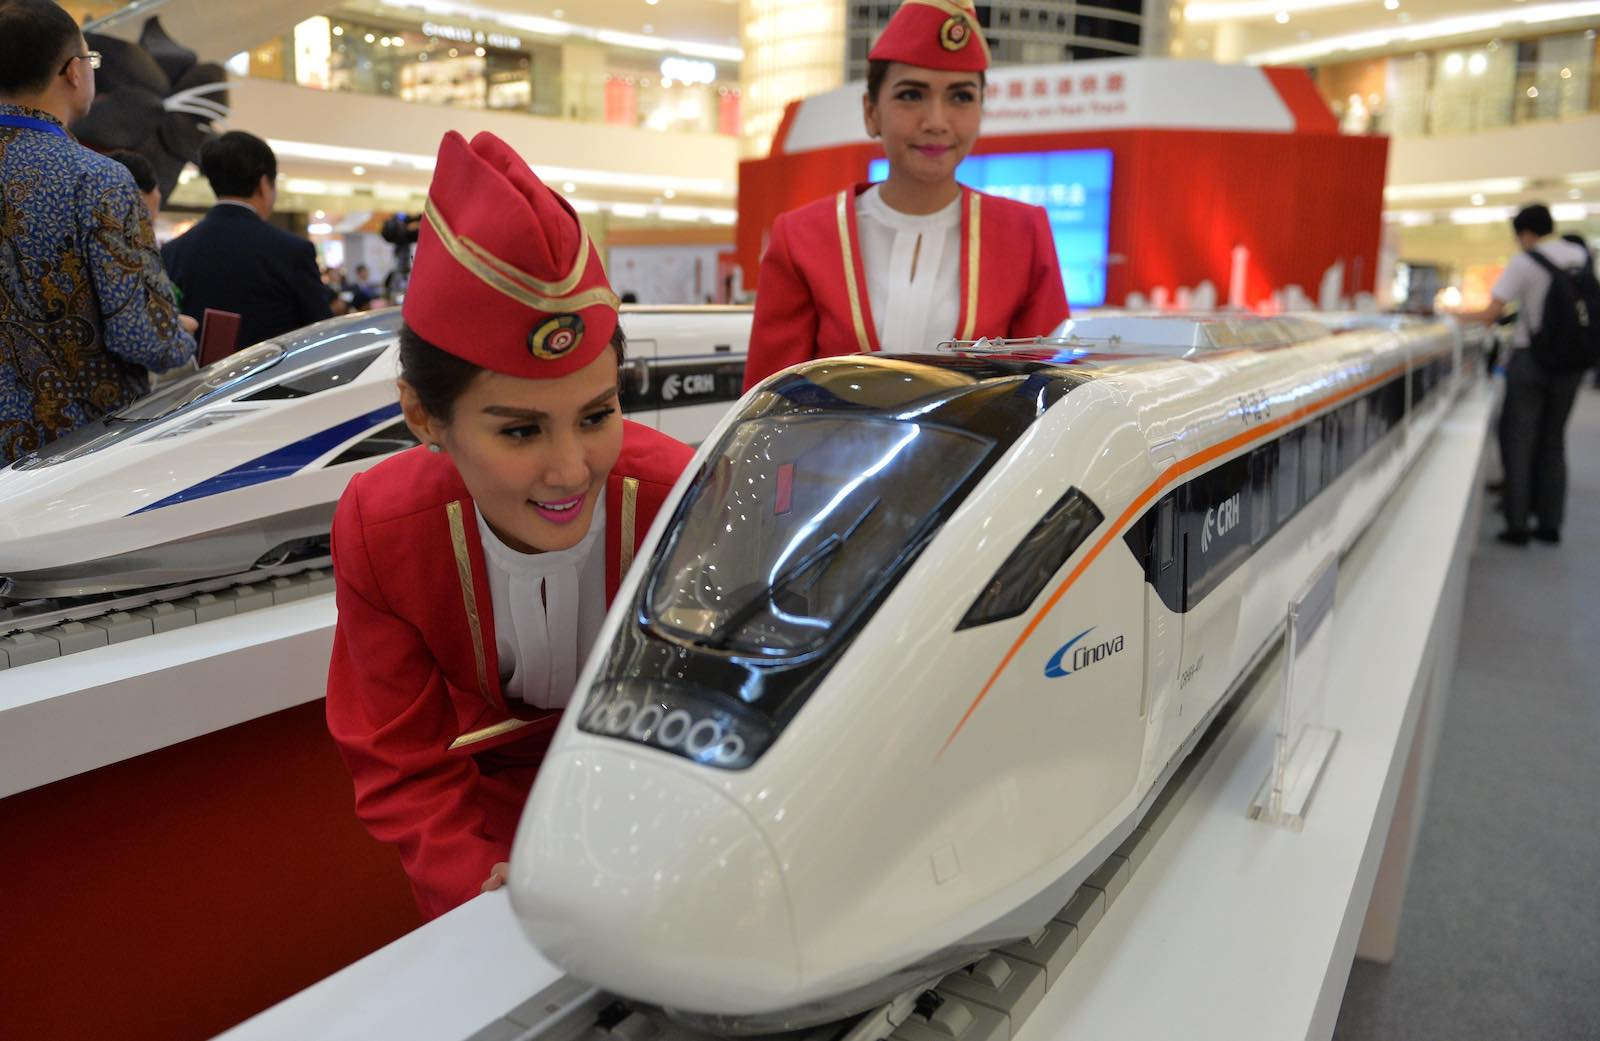 Models of Chinese-made bullet trains on exhibition in Jakarta (Photo: Bay Ismoyo via Getty)